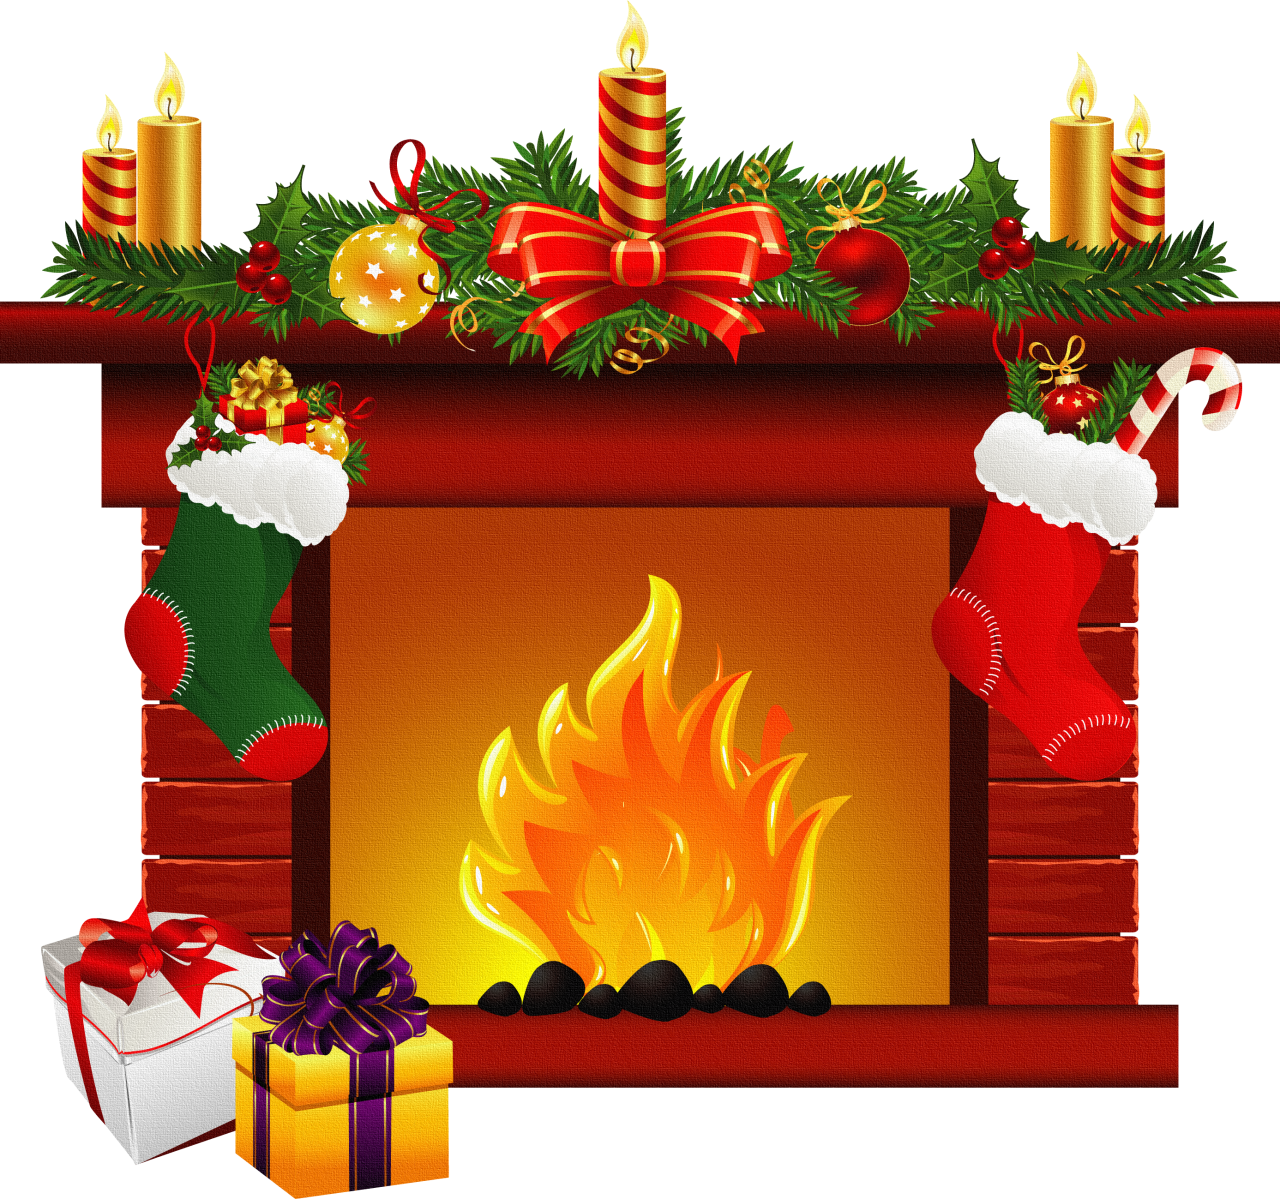 Fireplace clipart winter. Free cliparts download clip